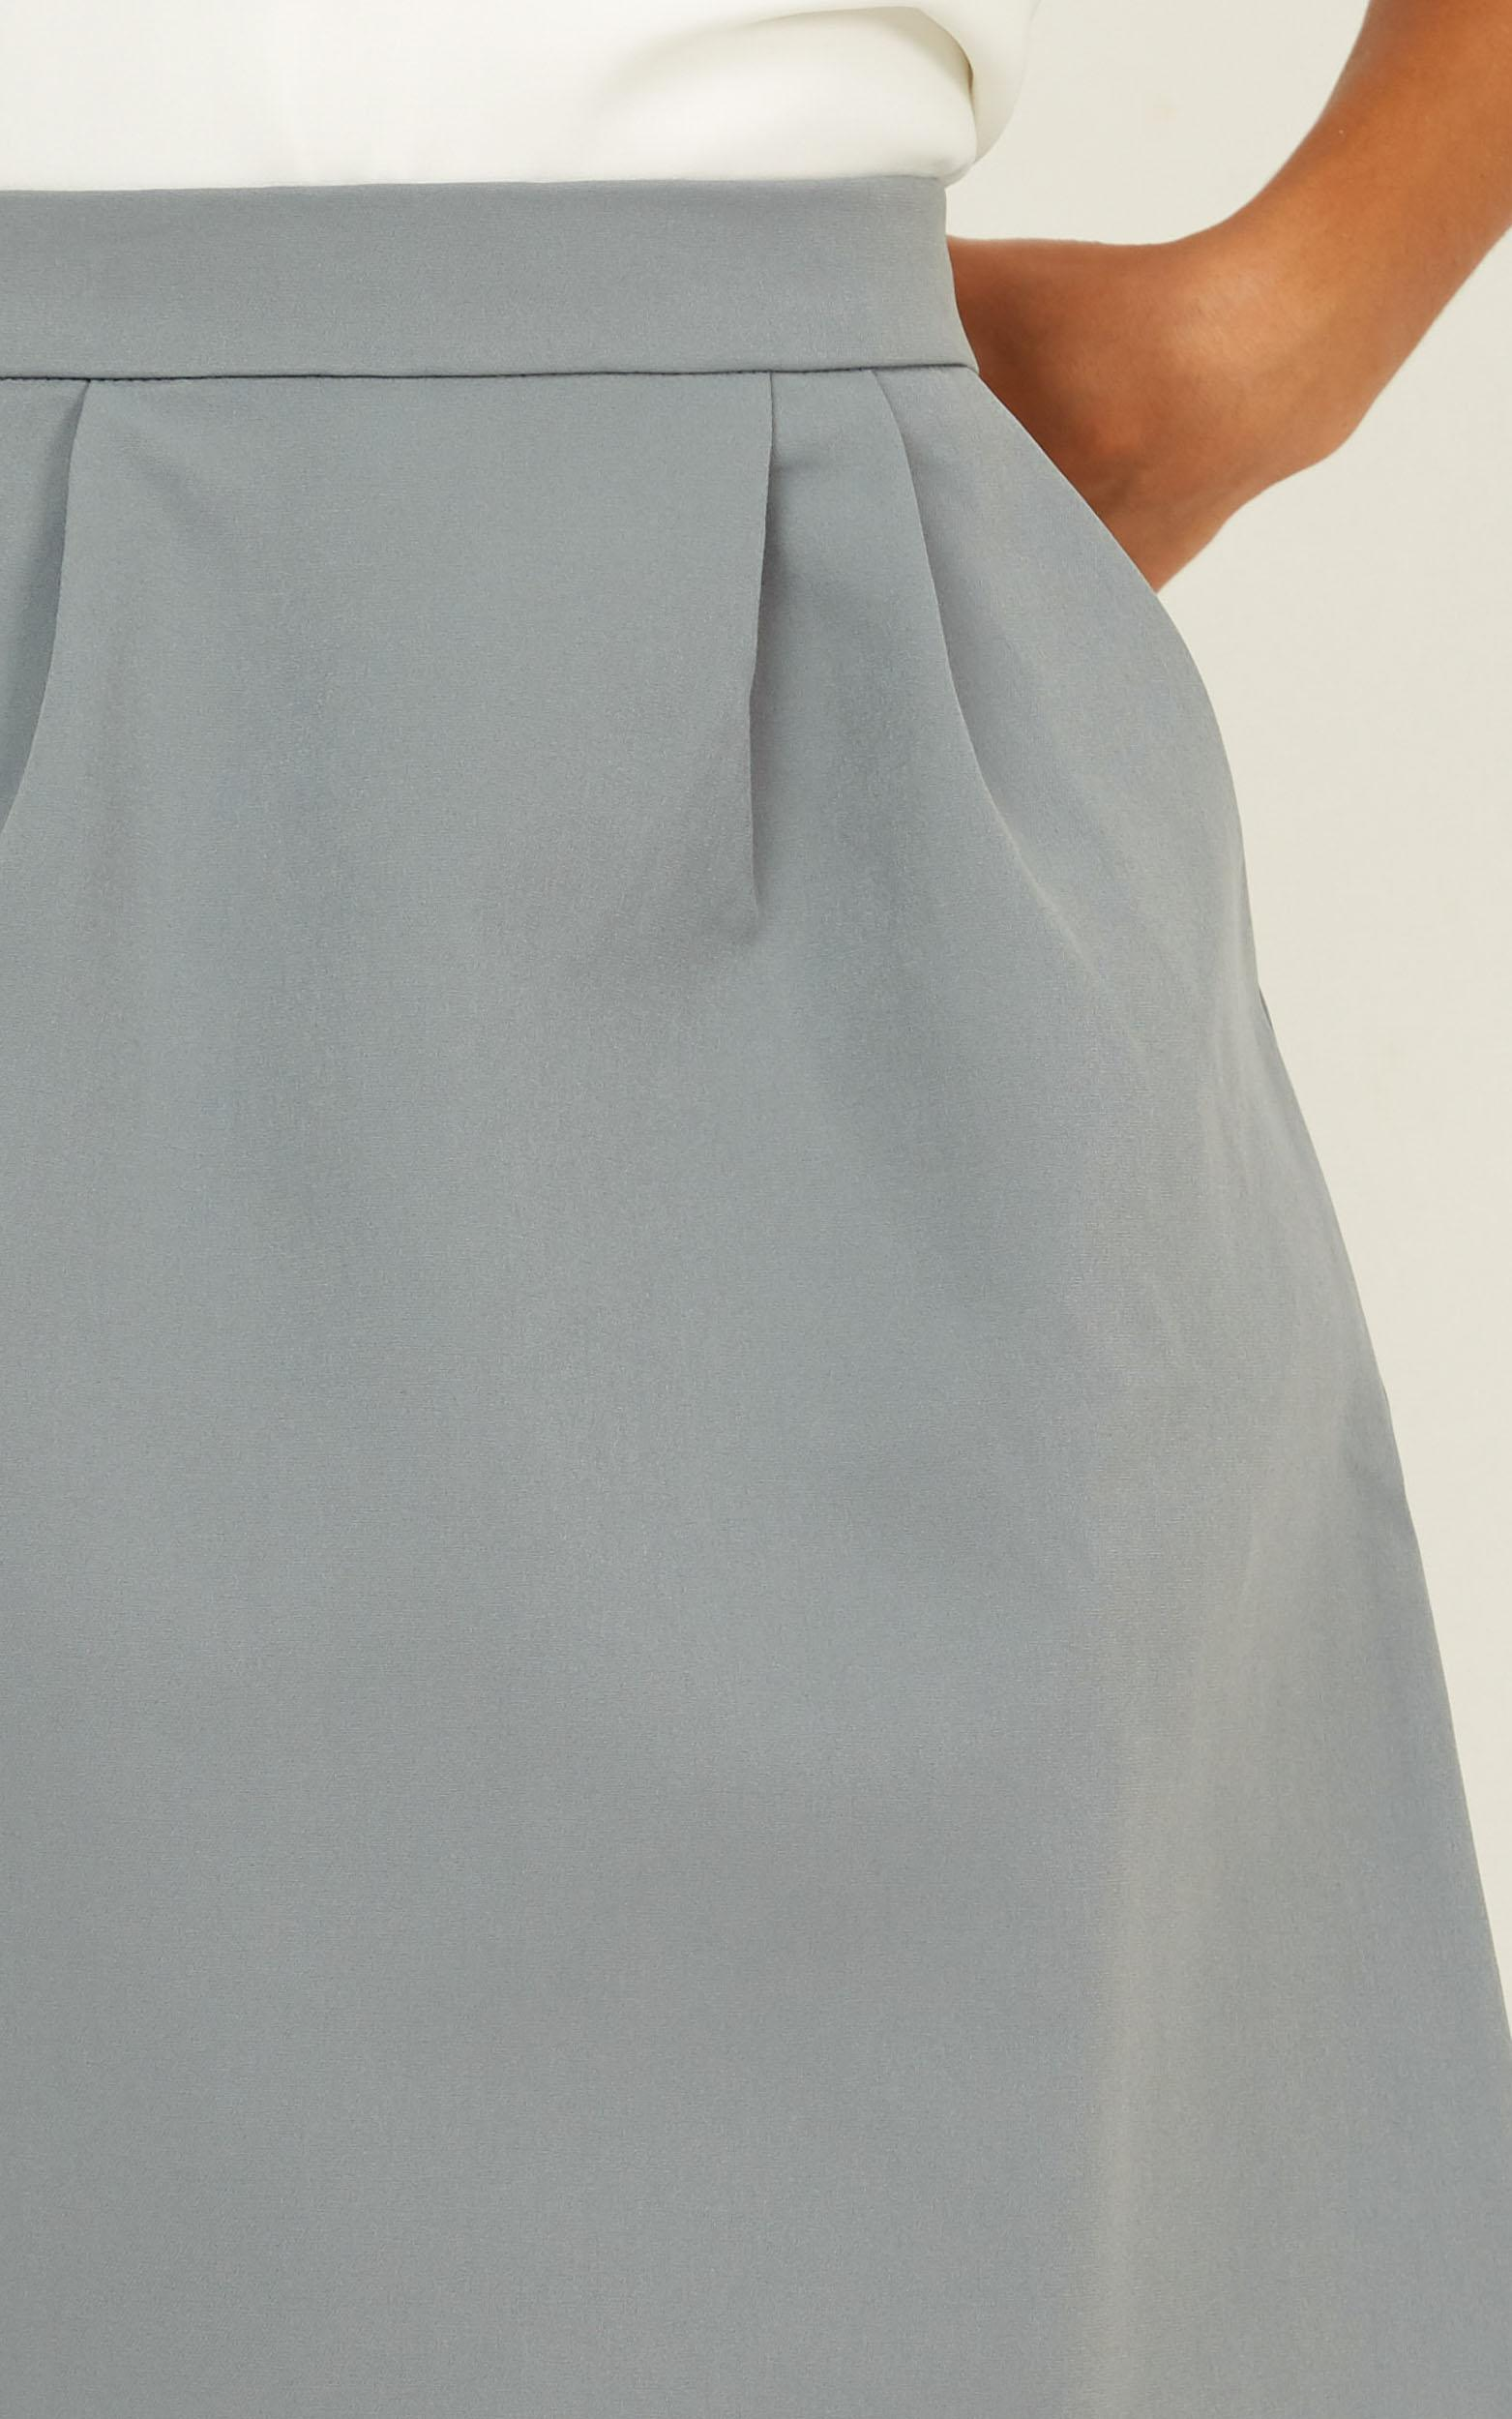 Crunch Time skirt in blue - 20 (XXXXL), Blue, hi-res image number null